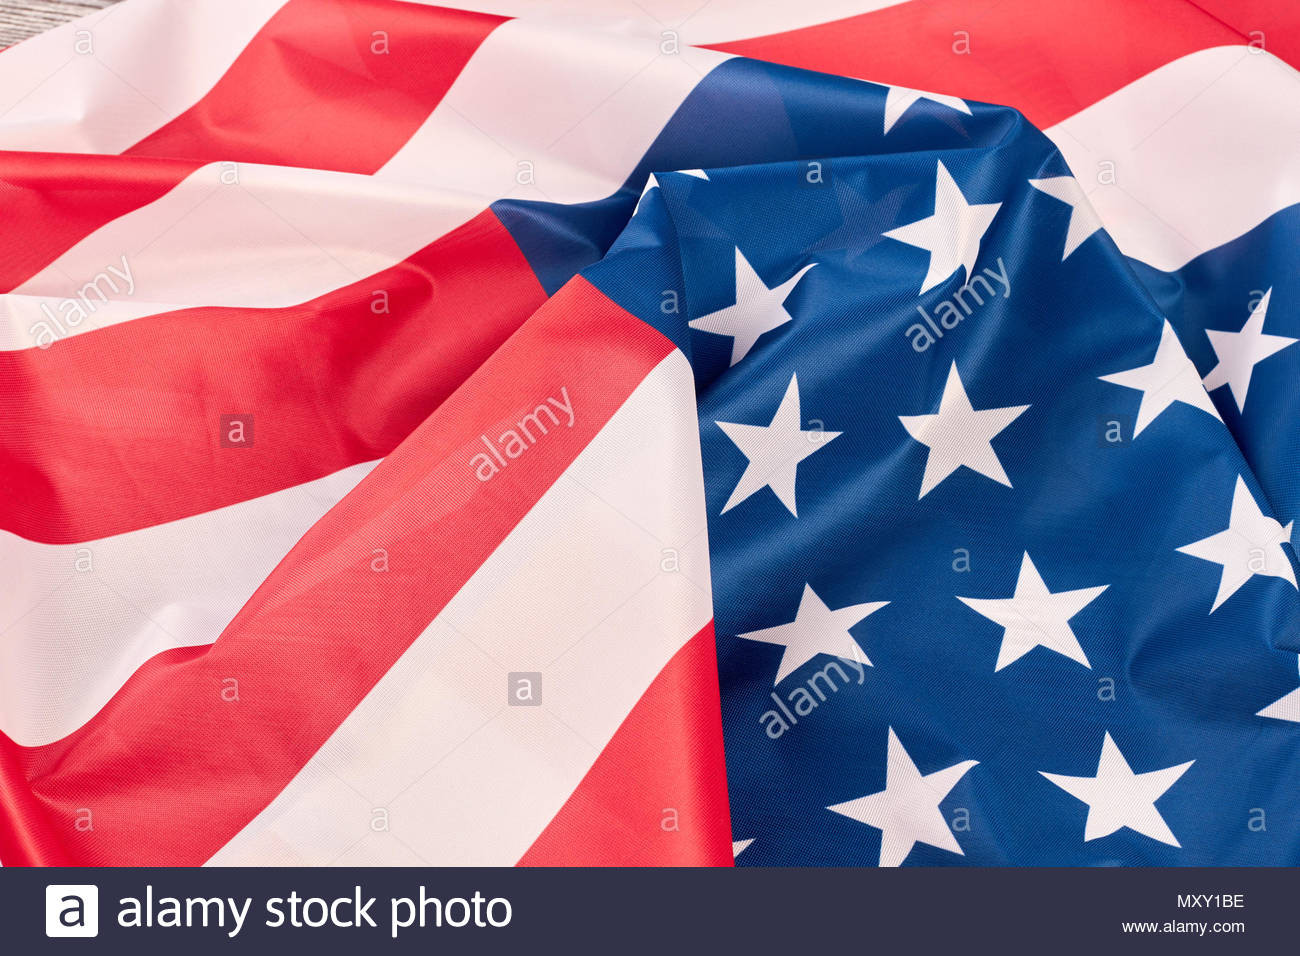 usa flag background close up crumpled flag of united states of america american flag wallpaper MXY1BE